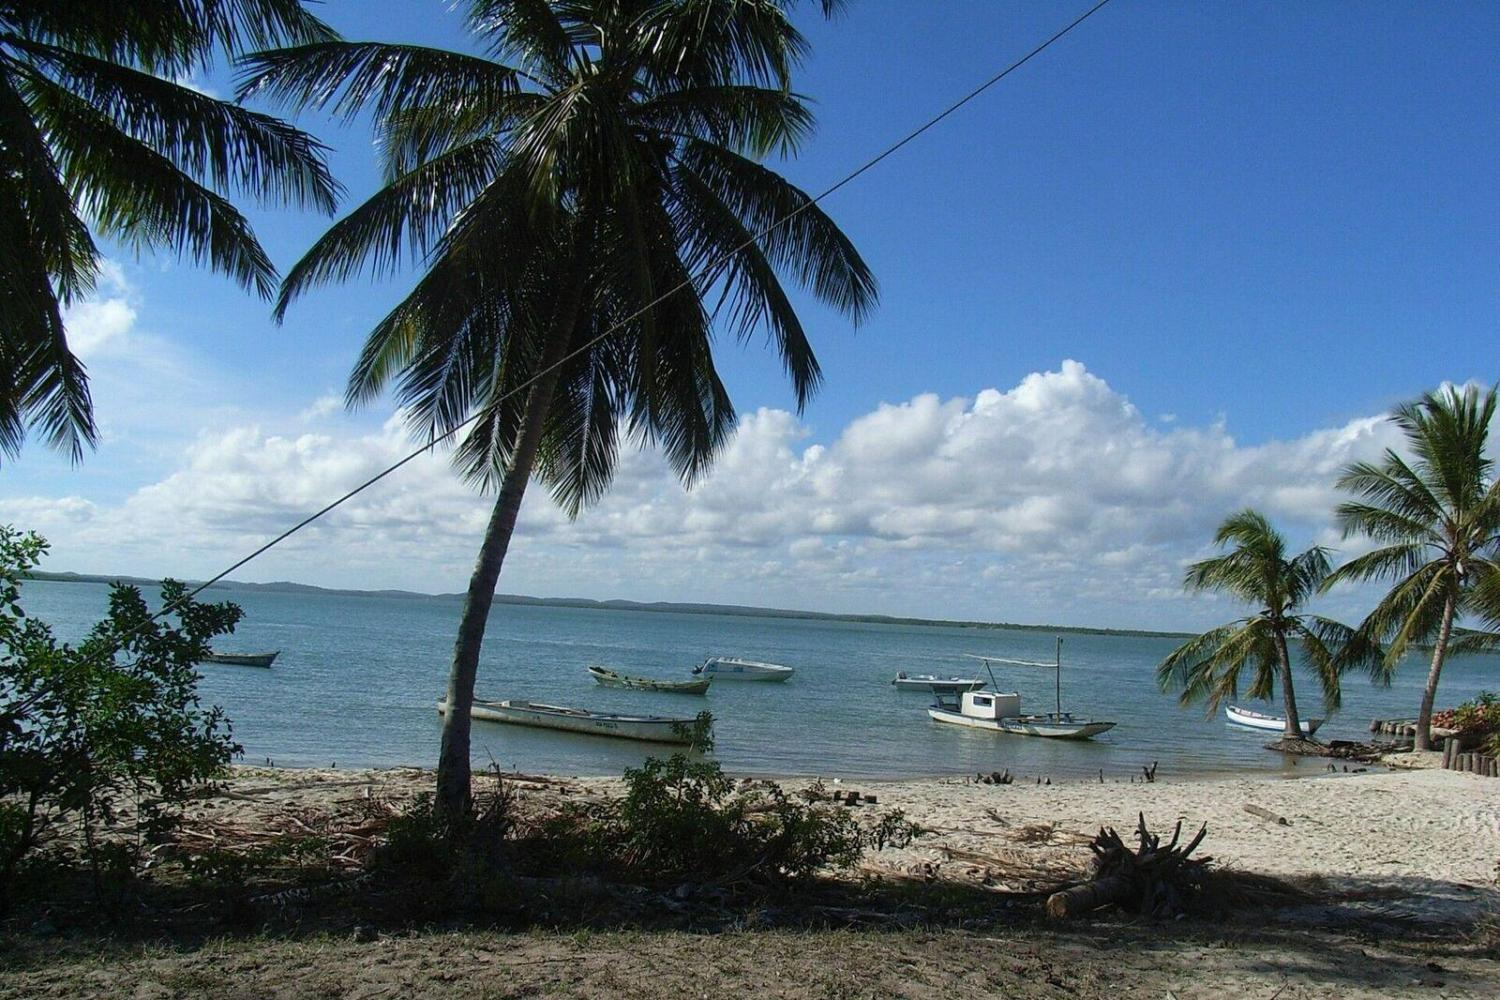 Visit Maracajau Beach for a day on the water